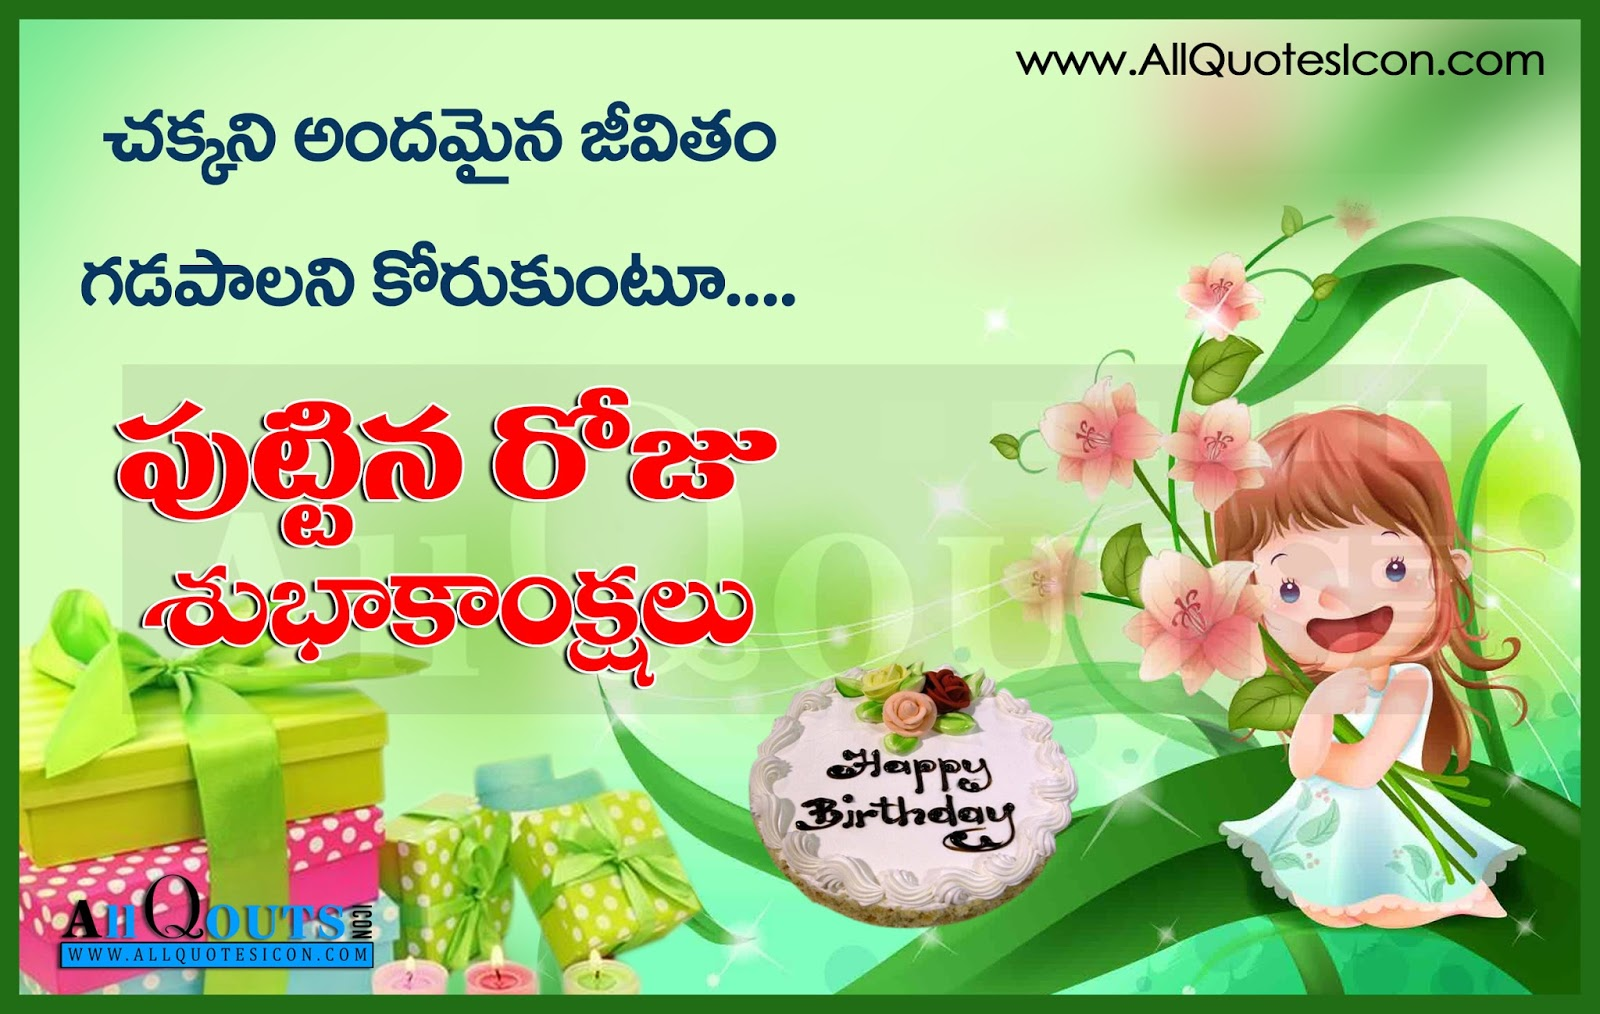 Happy birthday images quotes in telugu allquotesicon happy birthday telugu quotes images pictures wallpapers photos m4hsunfo